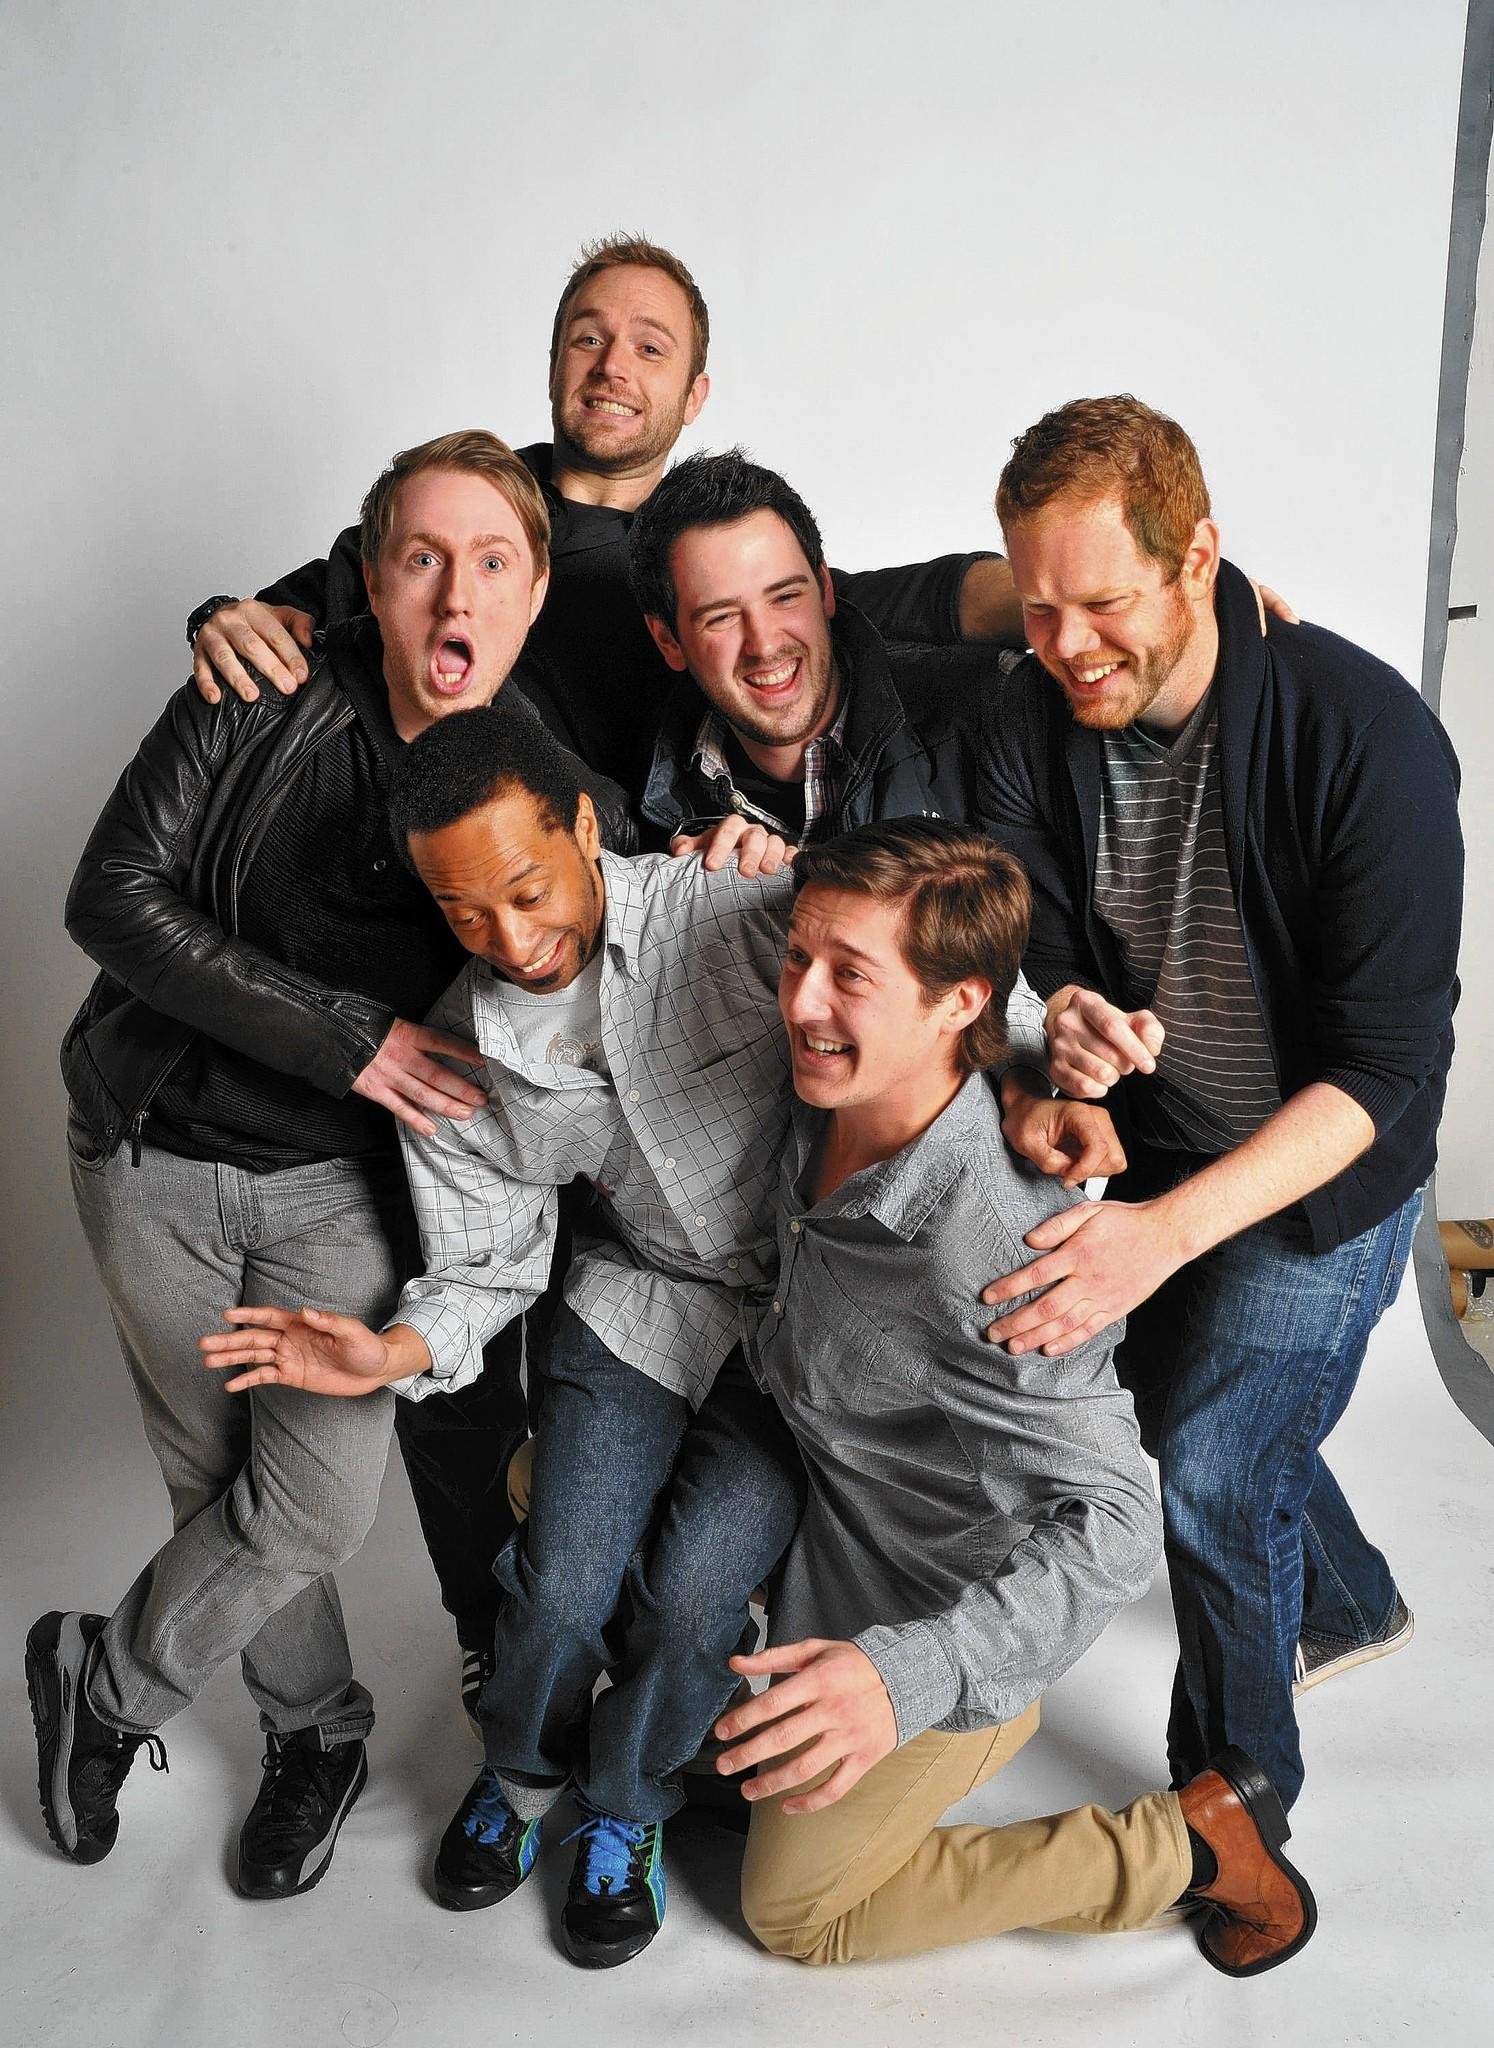 Members of Color Me Funny, a comedy group who do web comedy shorts and perform at open mic nights in the Baltimore area, are (front row, from left) Thezz Grimes and Matt Mahaffey, (middle row from left) Brandon Lescure, Joe Greenway and Justin Hancock and (in back) Mike Turpin.